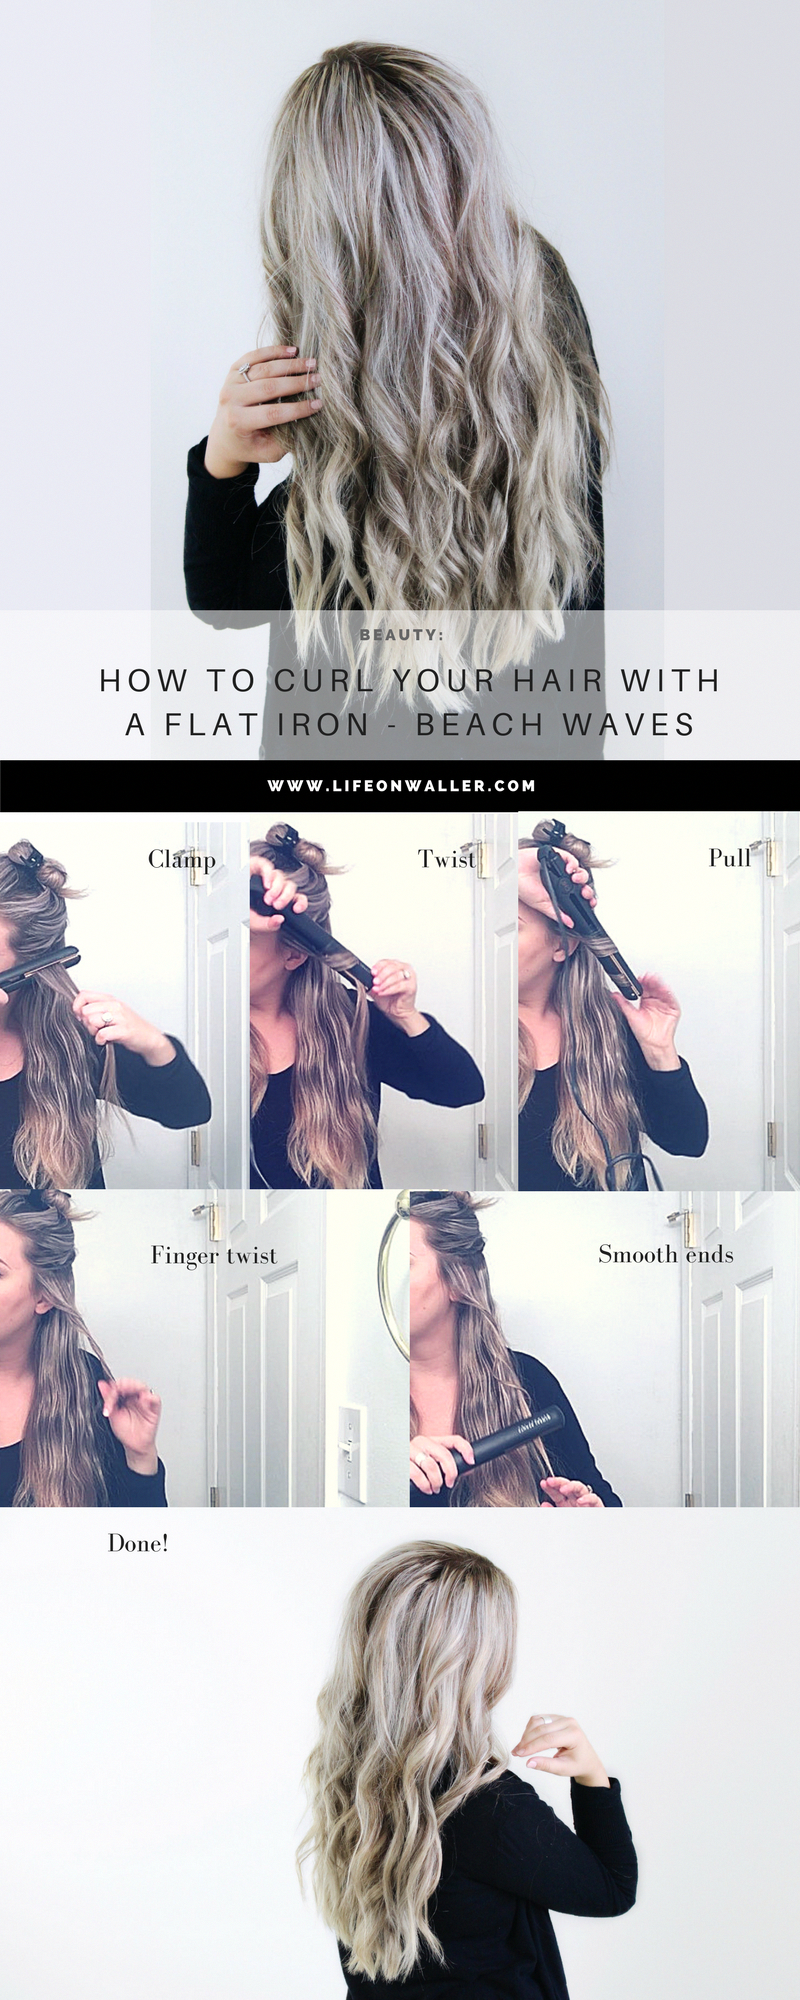 1401ce3ec241907e2717ce2def5ddd99 - How To Get Great Curls With A Flat Iron